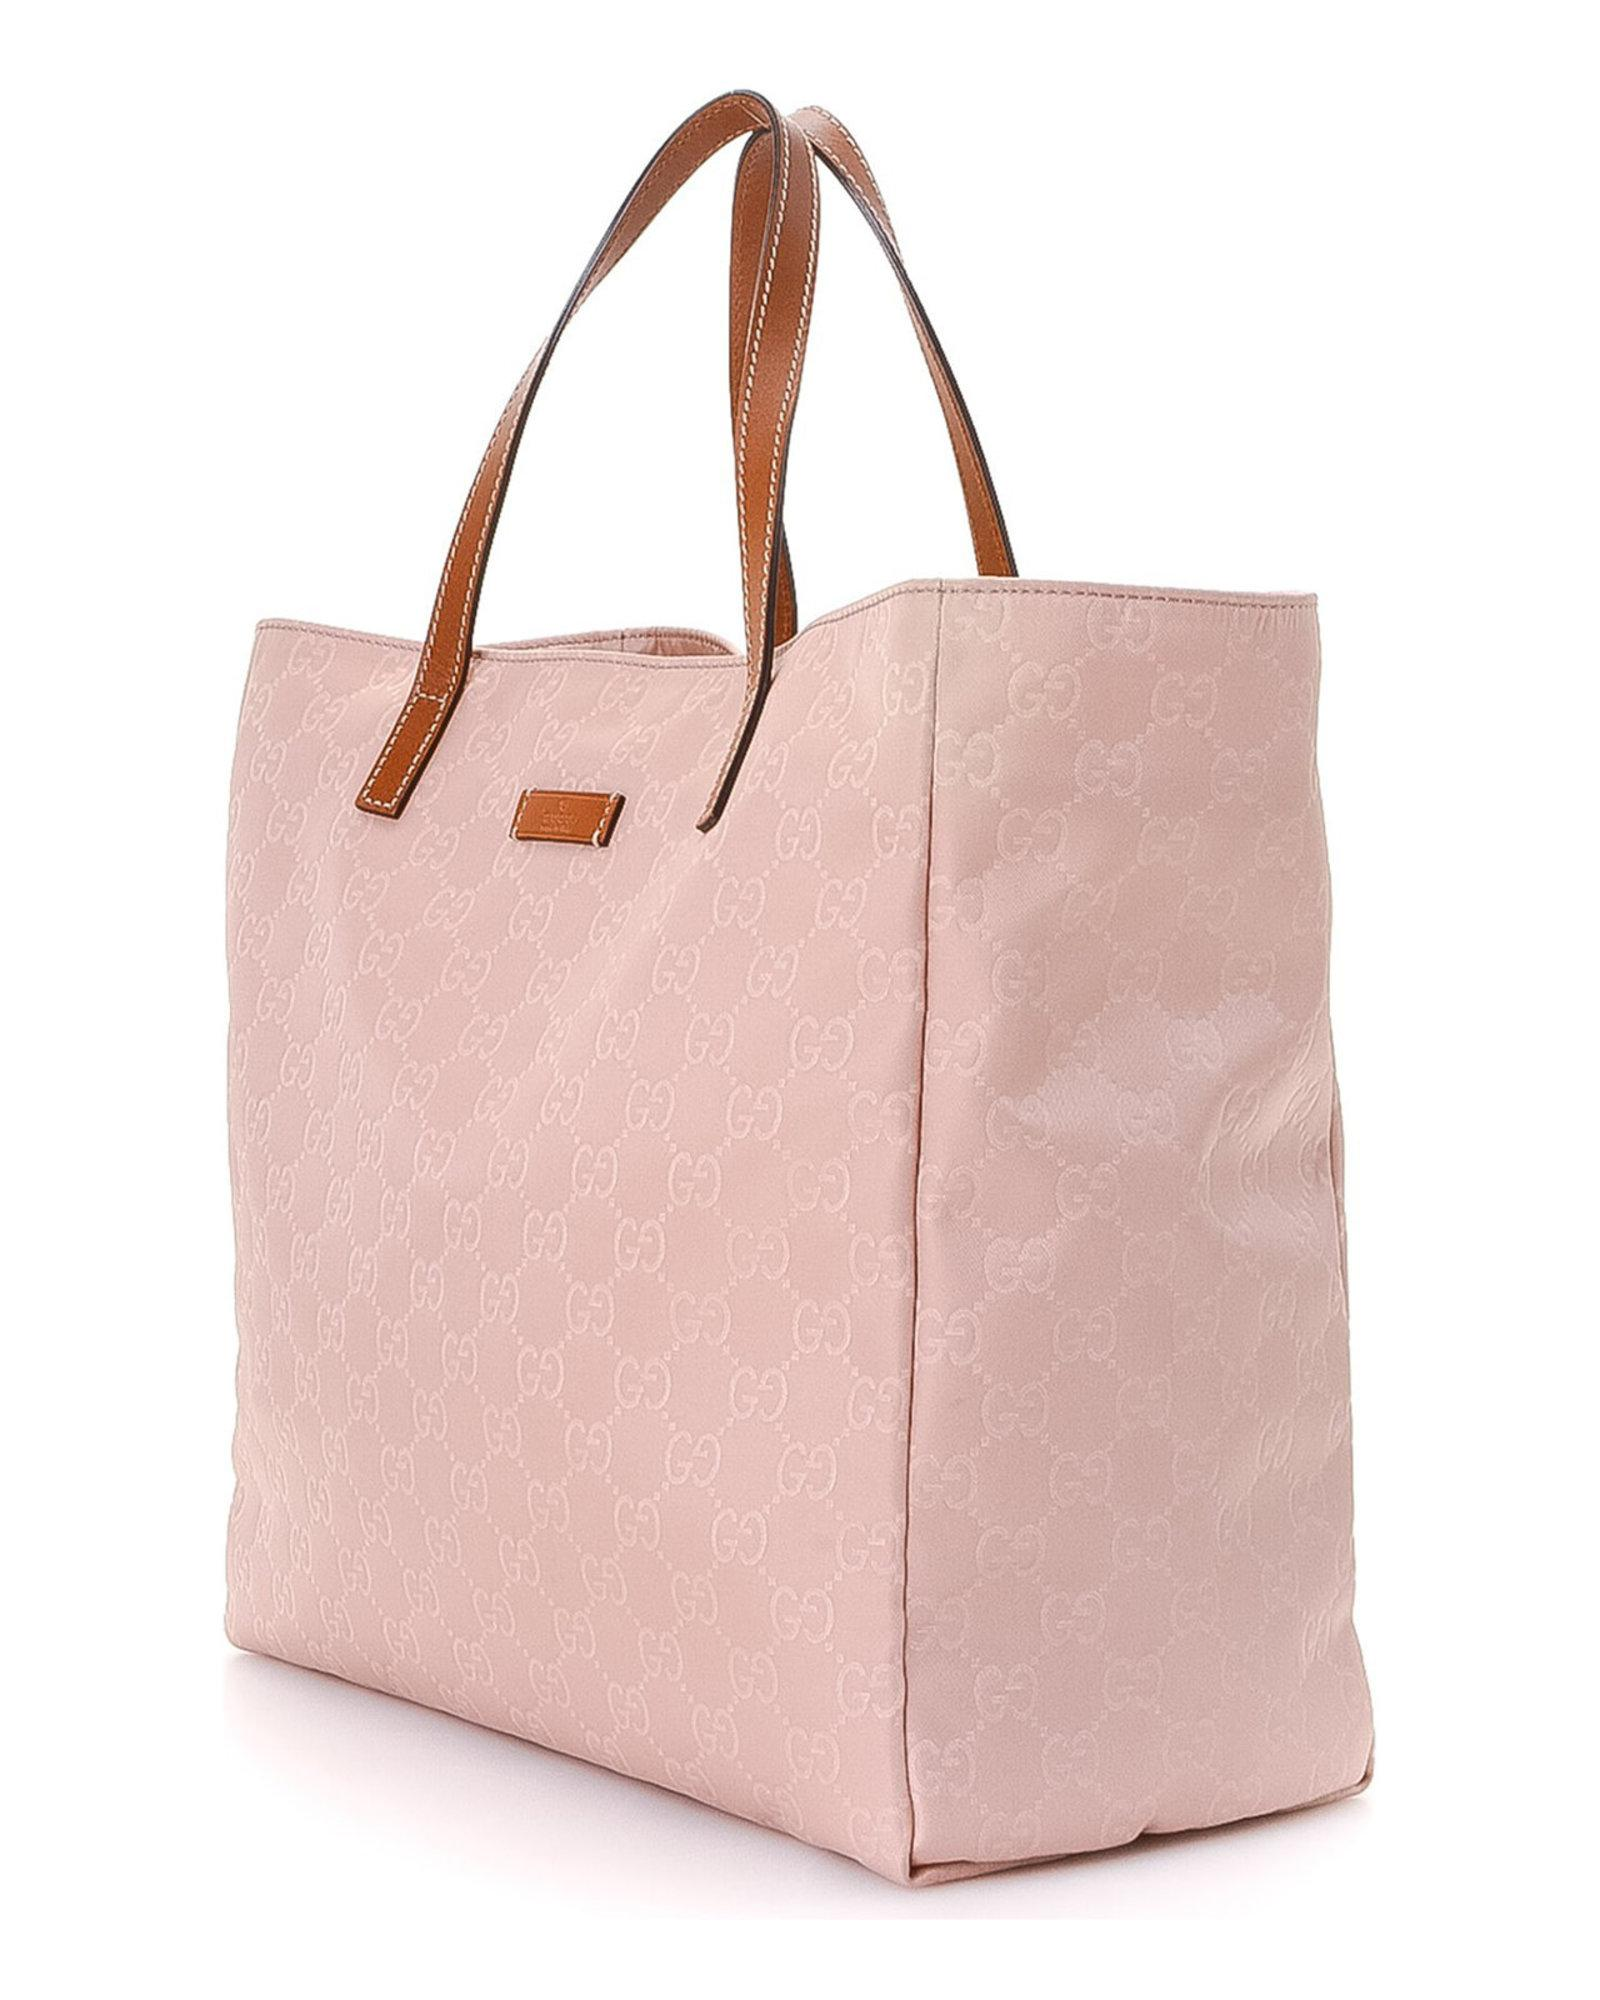 f9282394fa0 Lyst - Gucci Tote Bag - Vintage in Pink